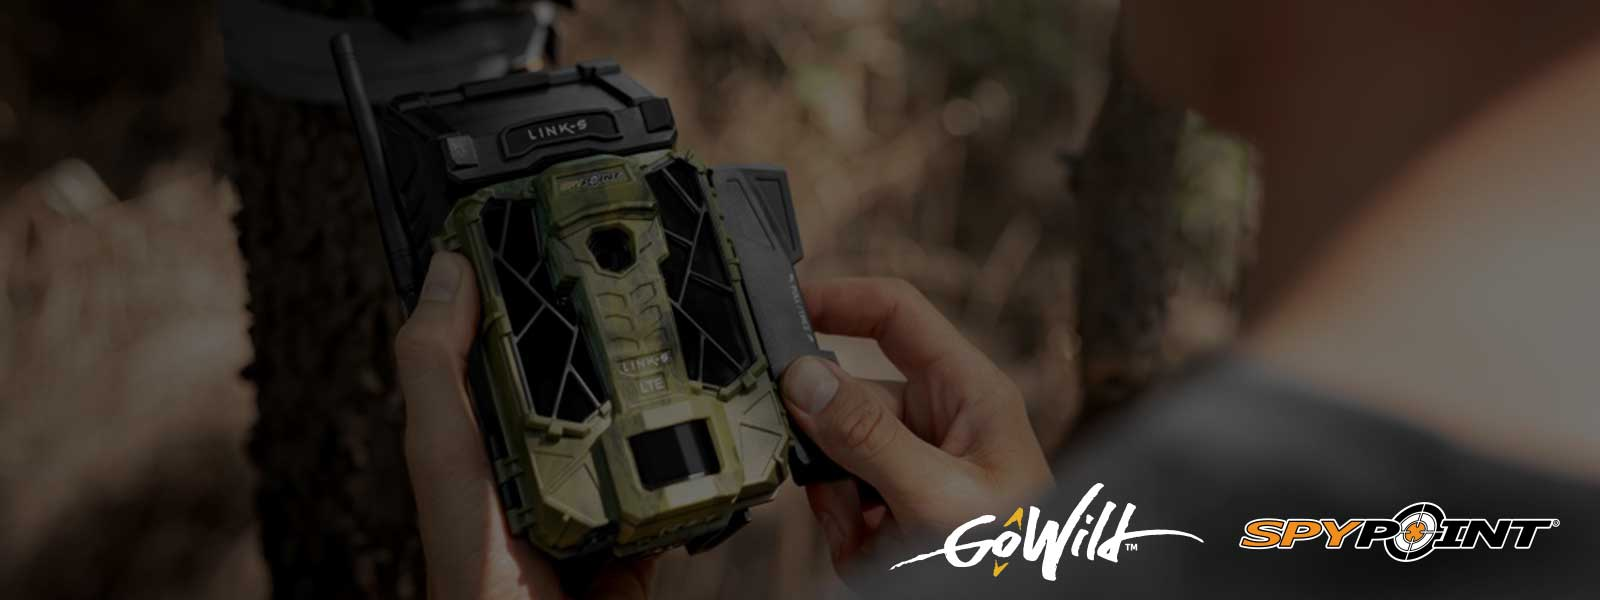 SPYPOINT Trail Cameras Focuses on GoWild's Ecommerce Platform for 2020